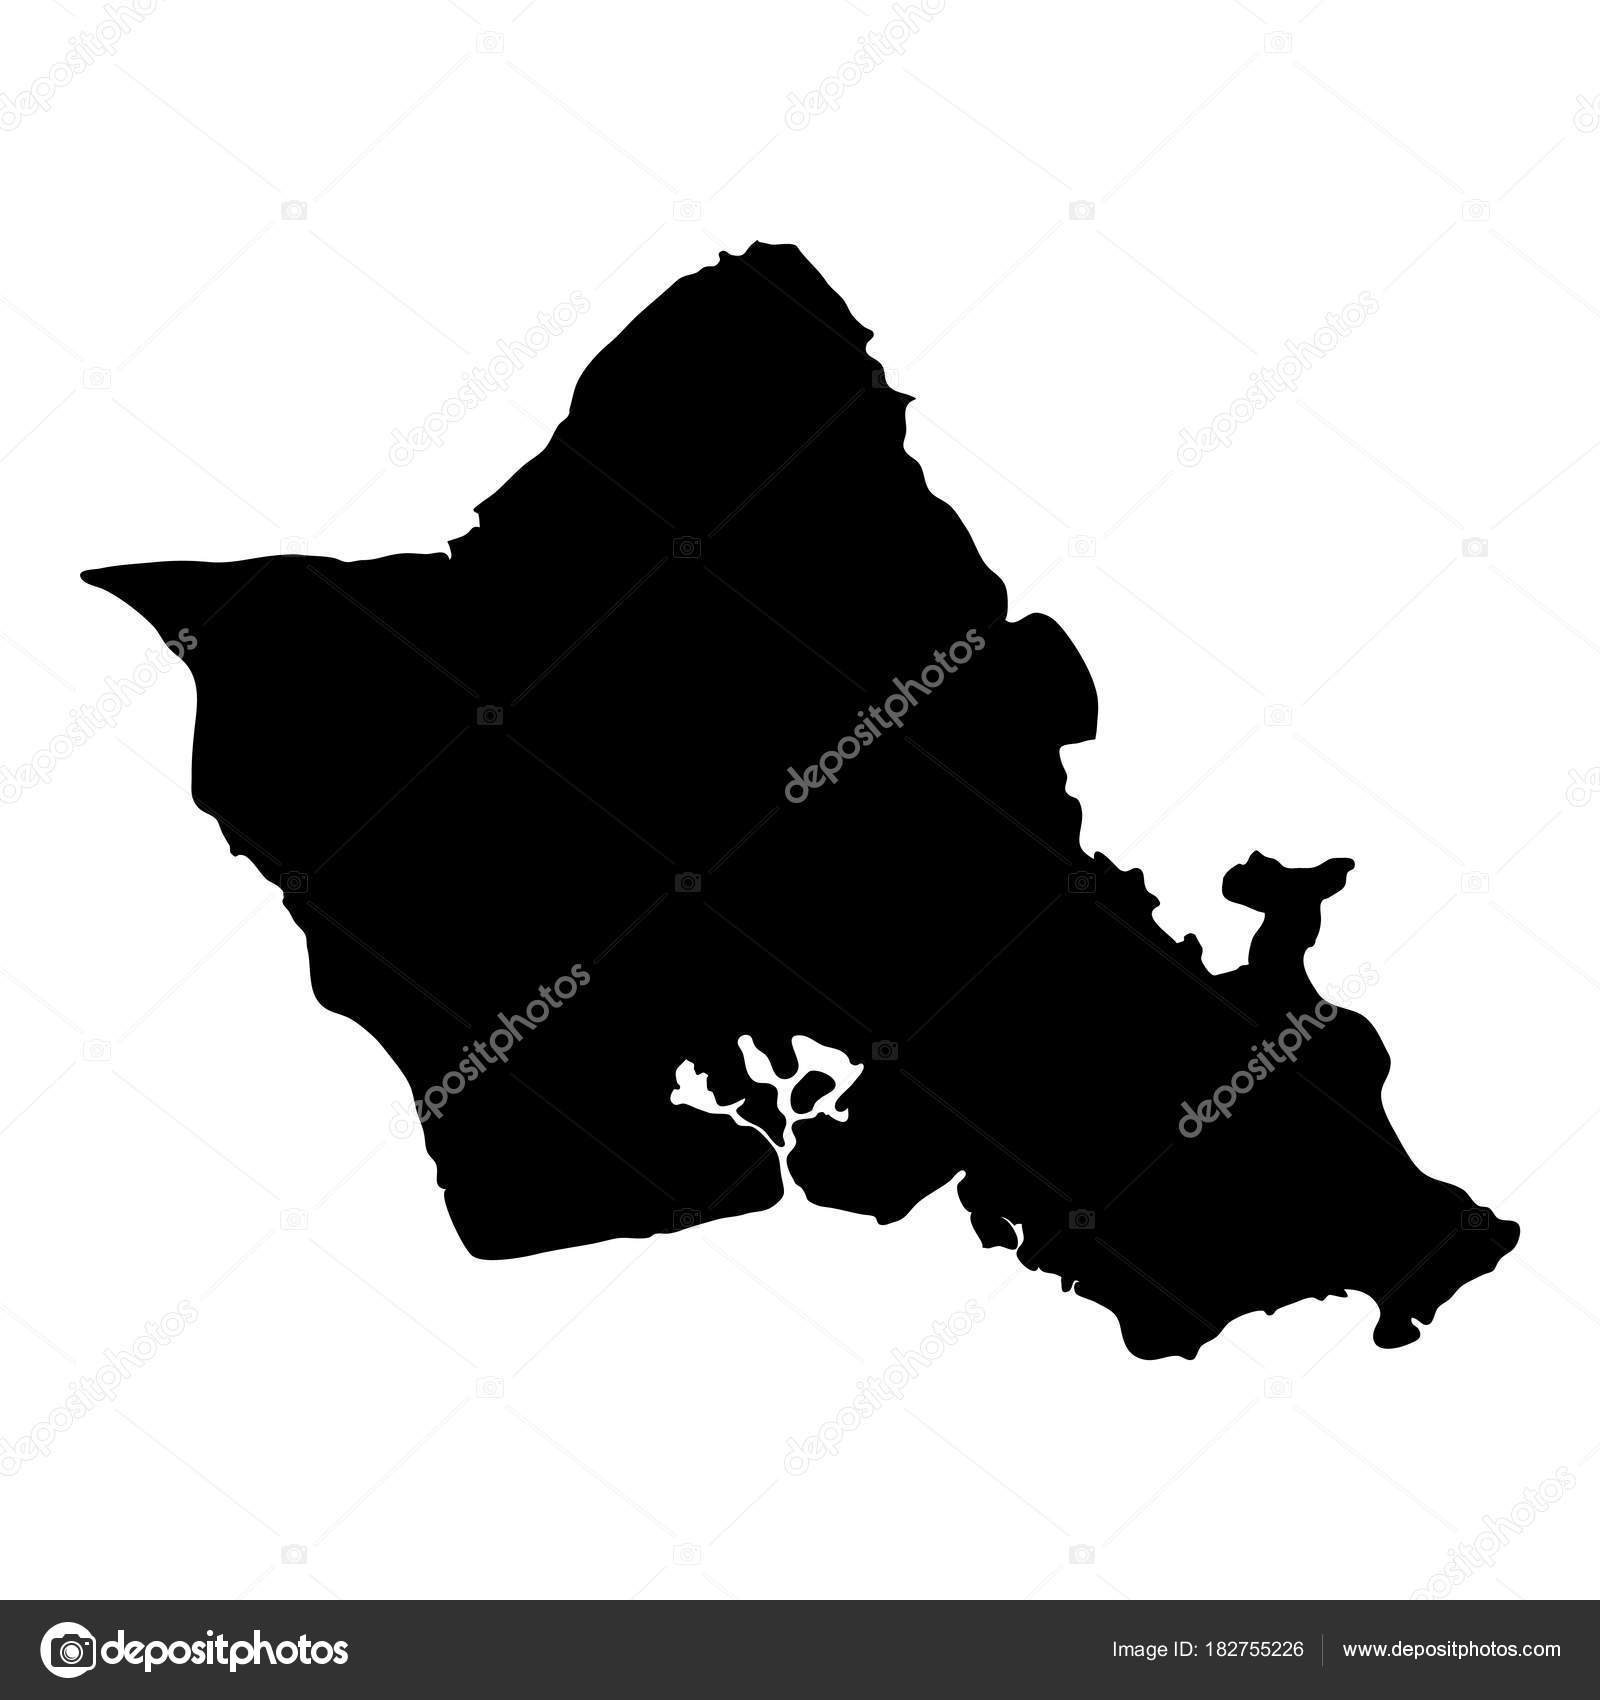 Oahu map Island silhouette icon Isolated Oahu black map outline     Oahu map Island silhouette icon Isolated Oahu black map outline Vector  illustration     Stock Vector